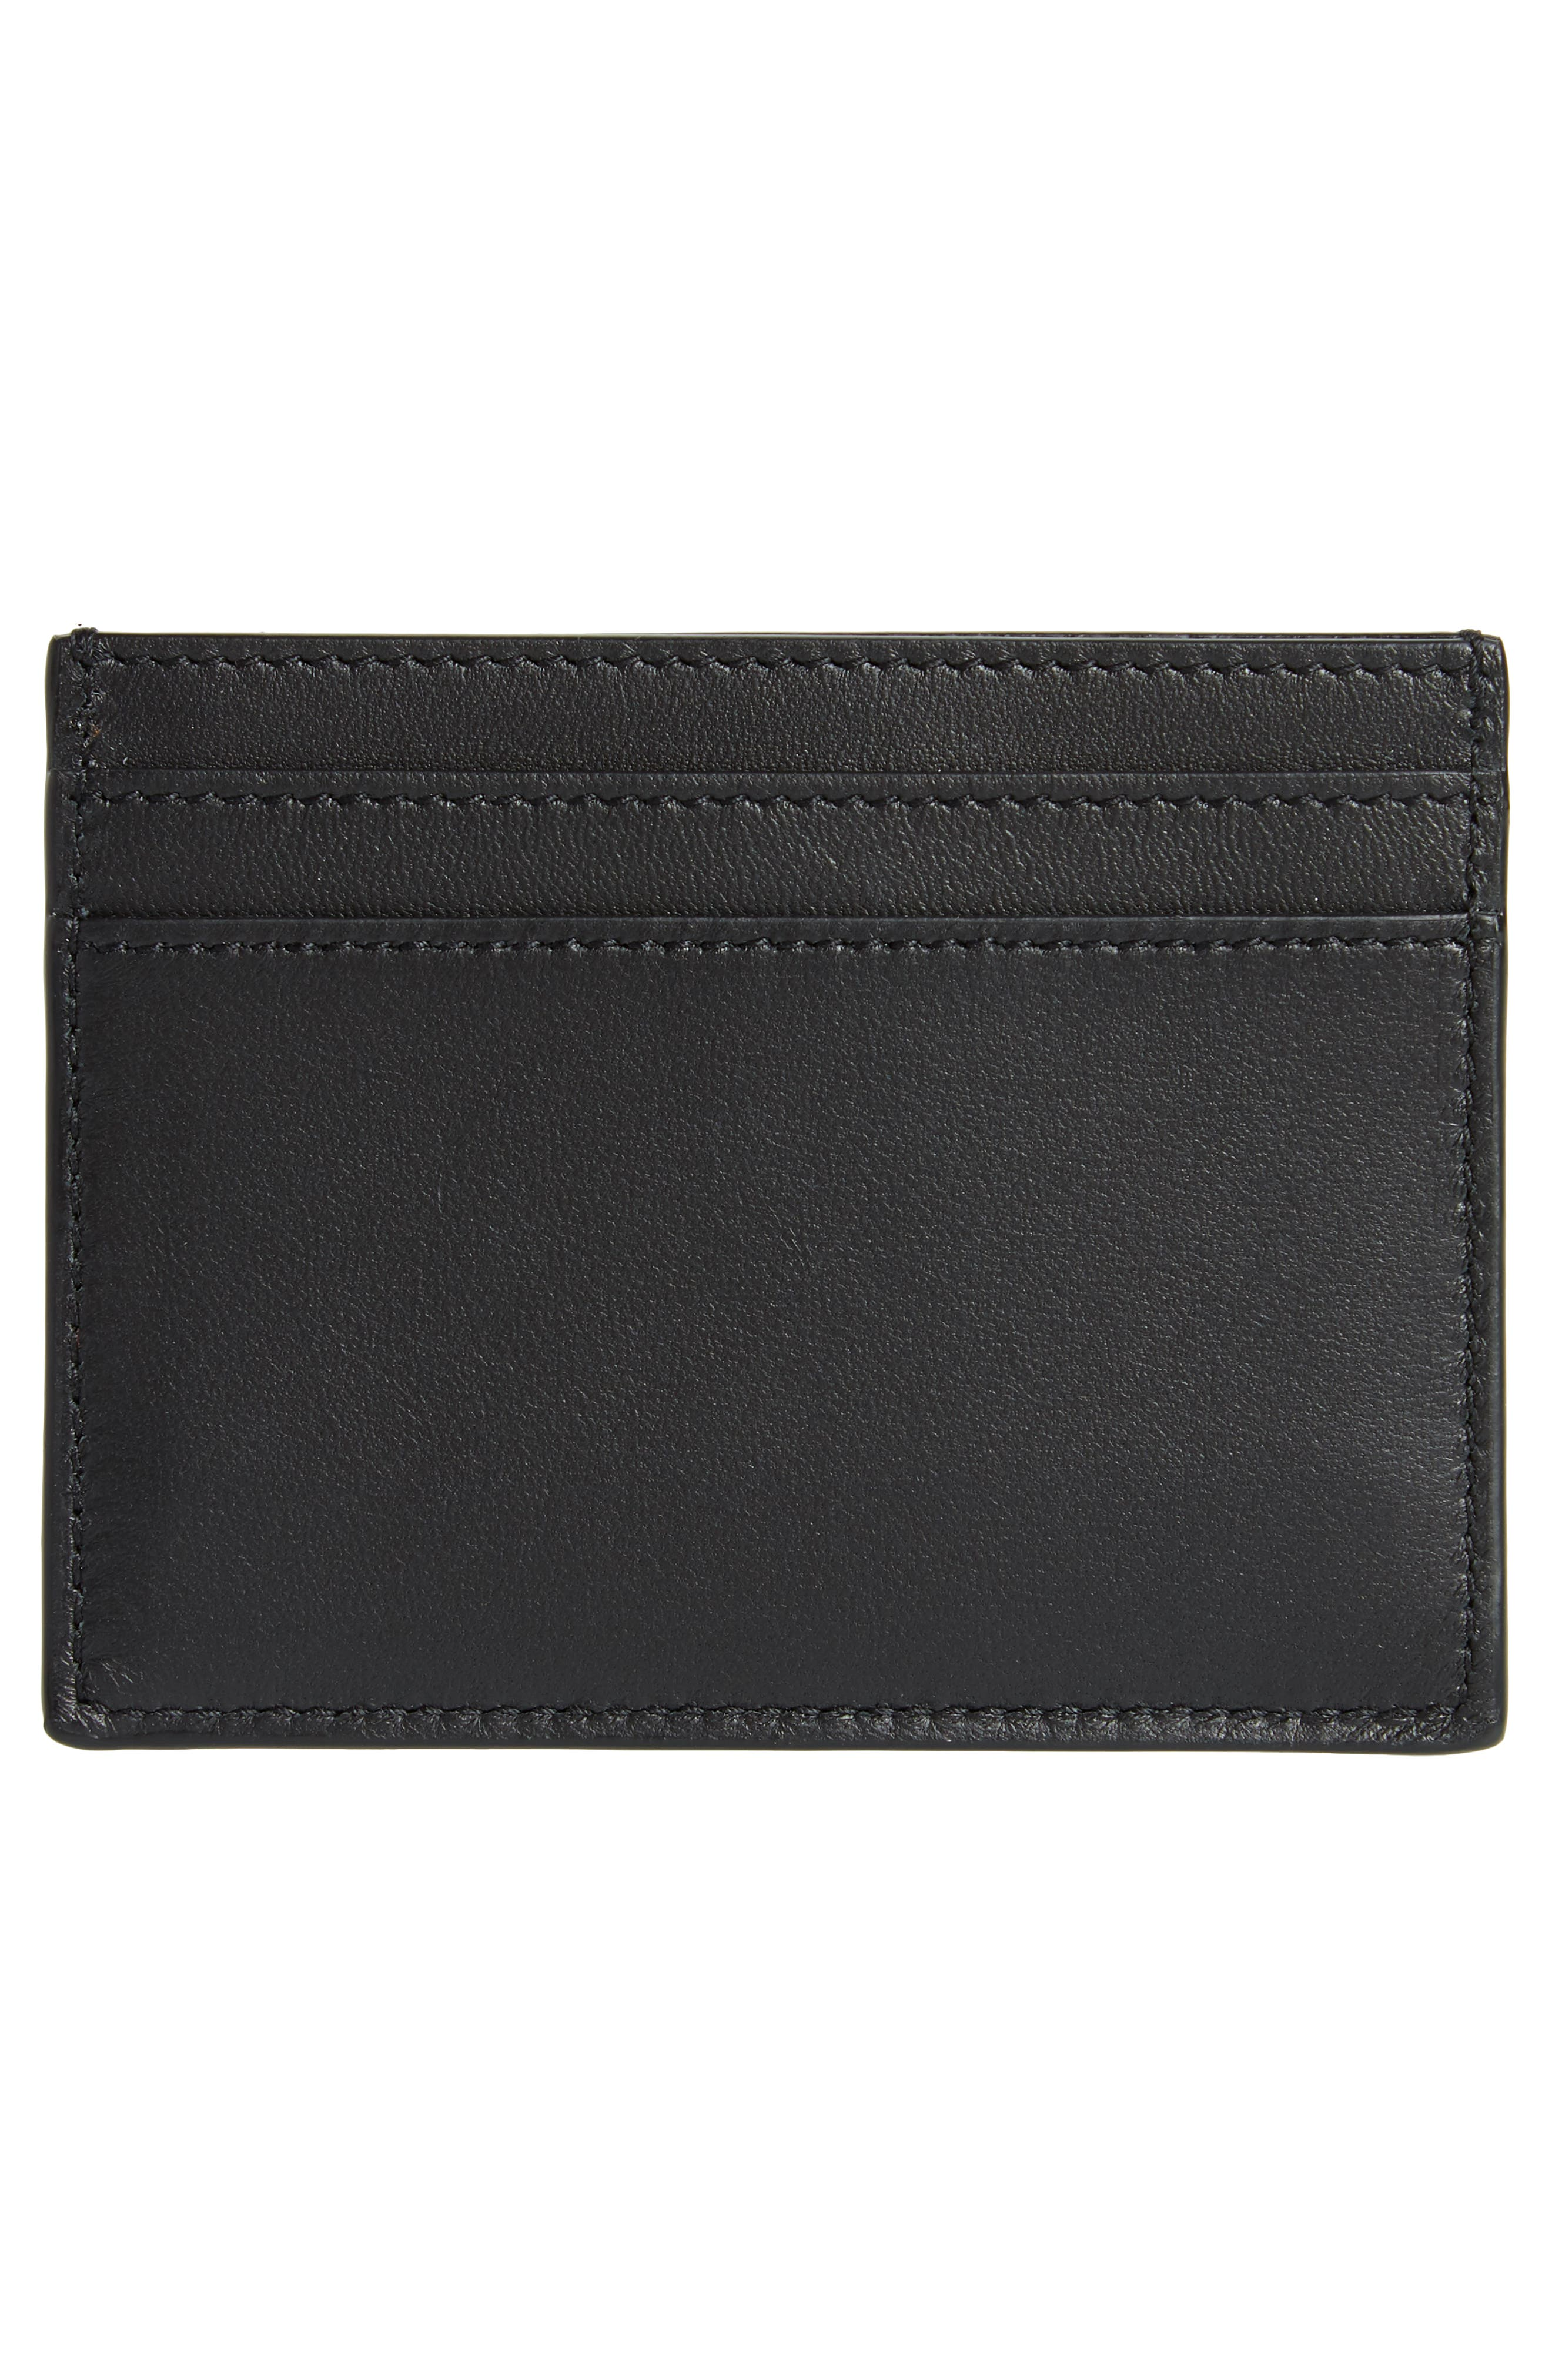 Embroidered Patch Leather Card Case,                             Alternate thumbnail 2, color,                             001